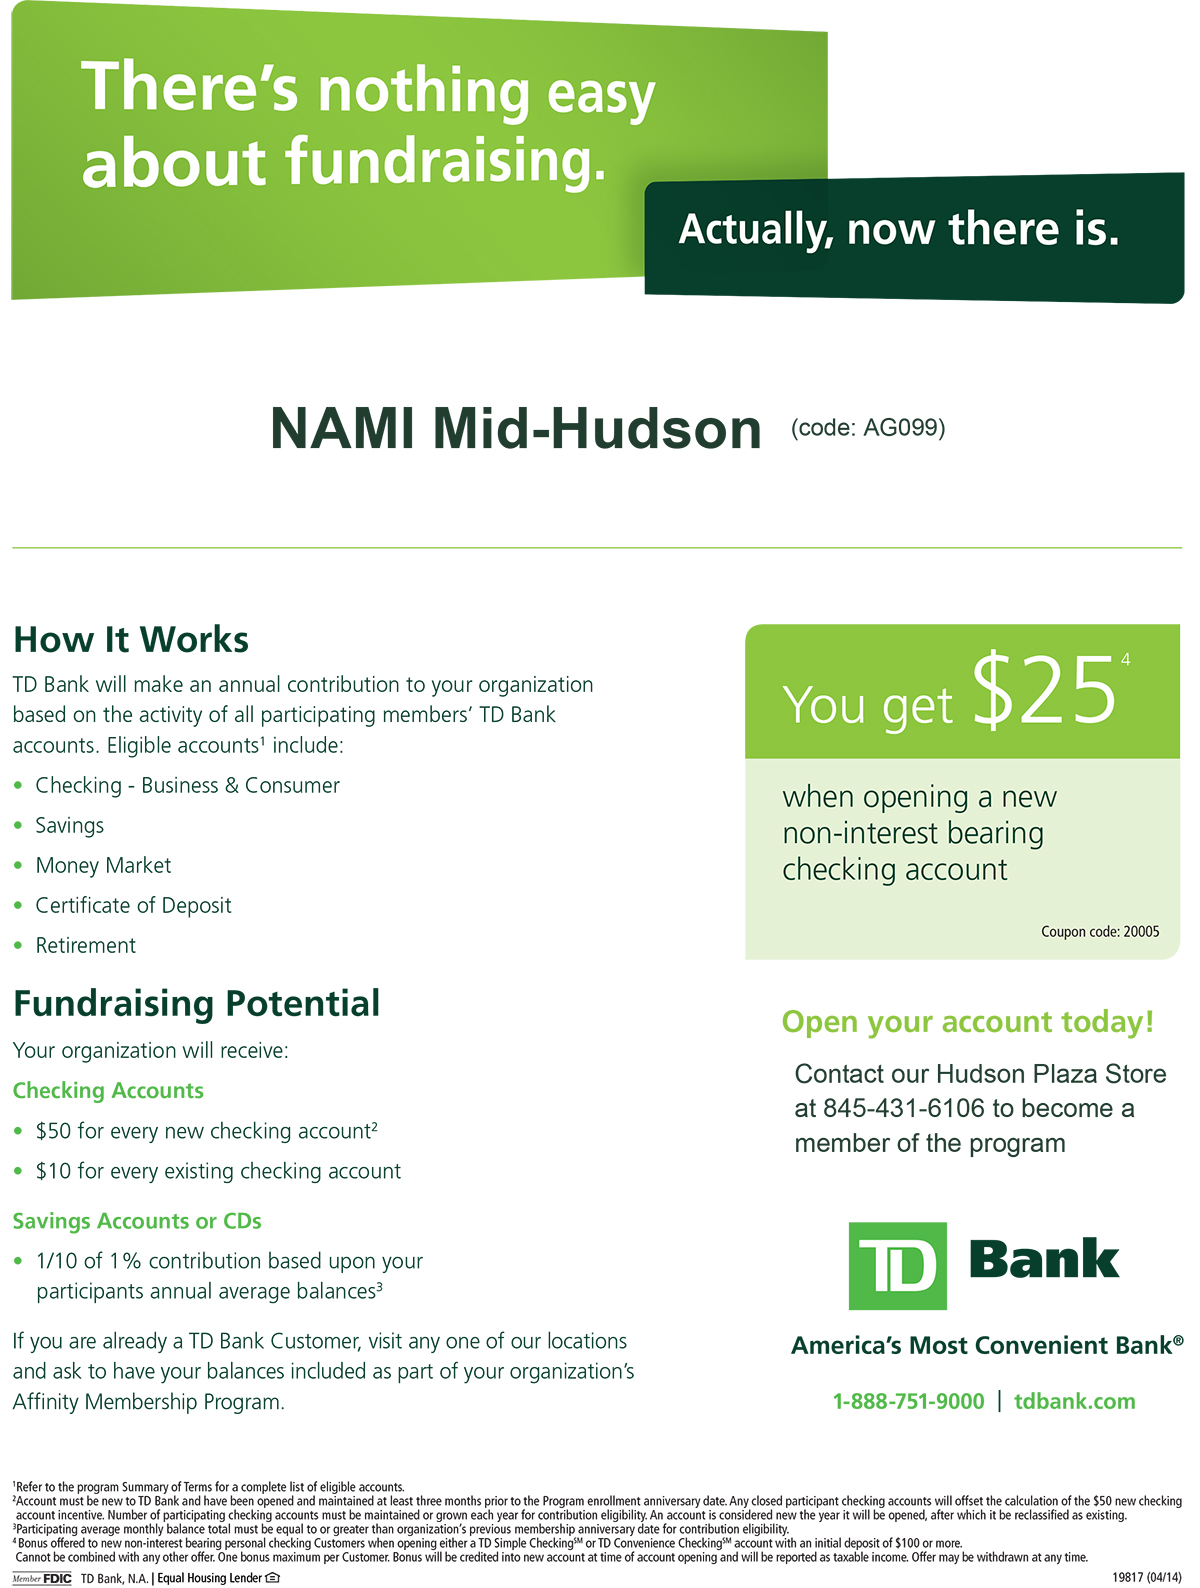 Td Bank Affinity Program Nami Mid Hudson